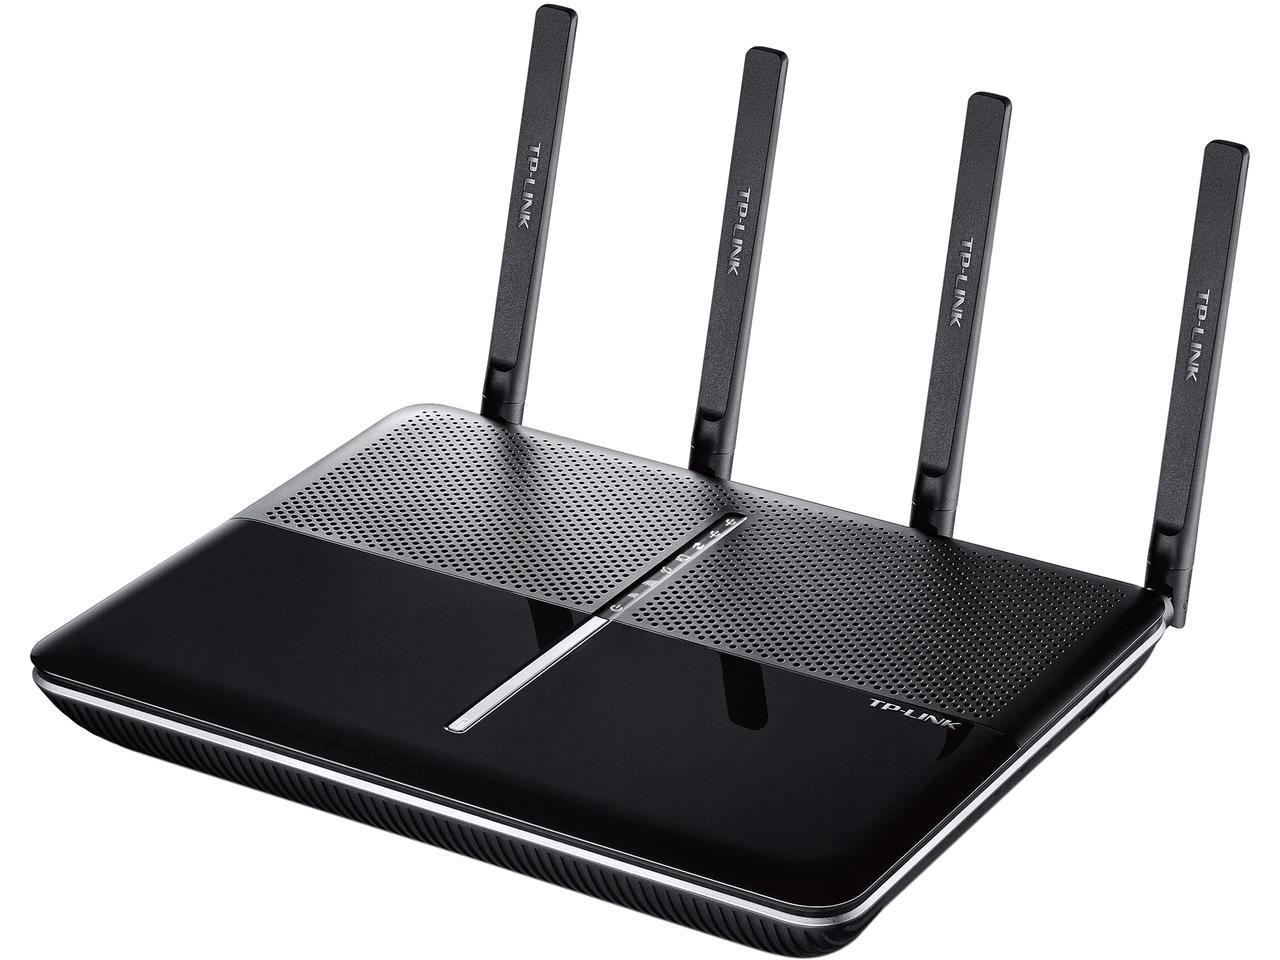 TP-Link AC2600 Wireless Wi-Fi Gigabit Router with MU-MIMO (Archer C2600) for $69.99